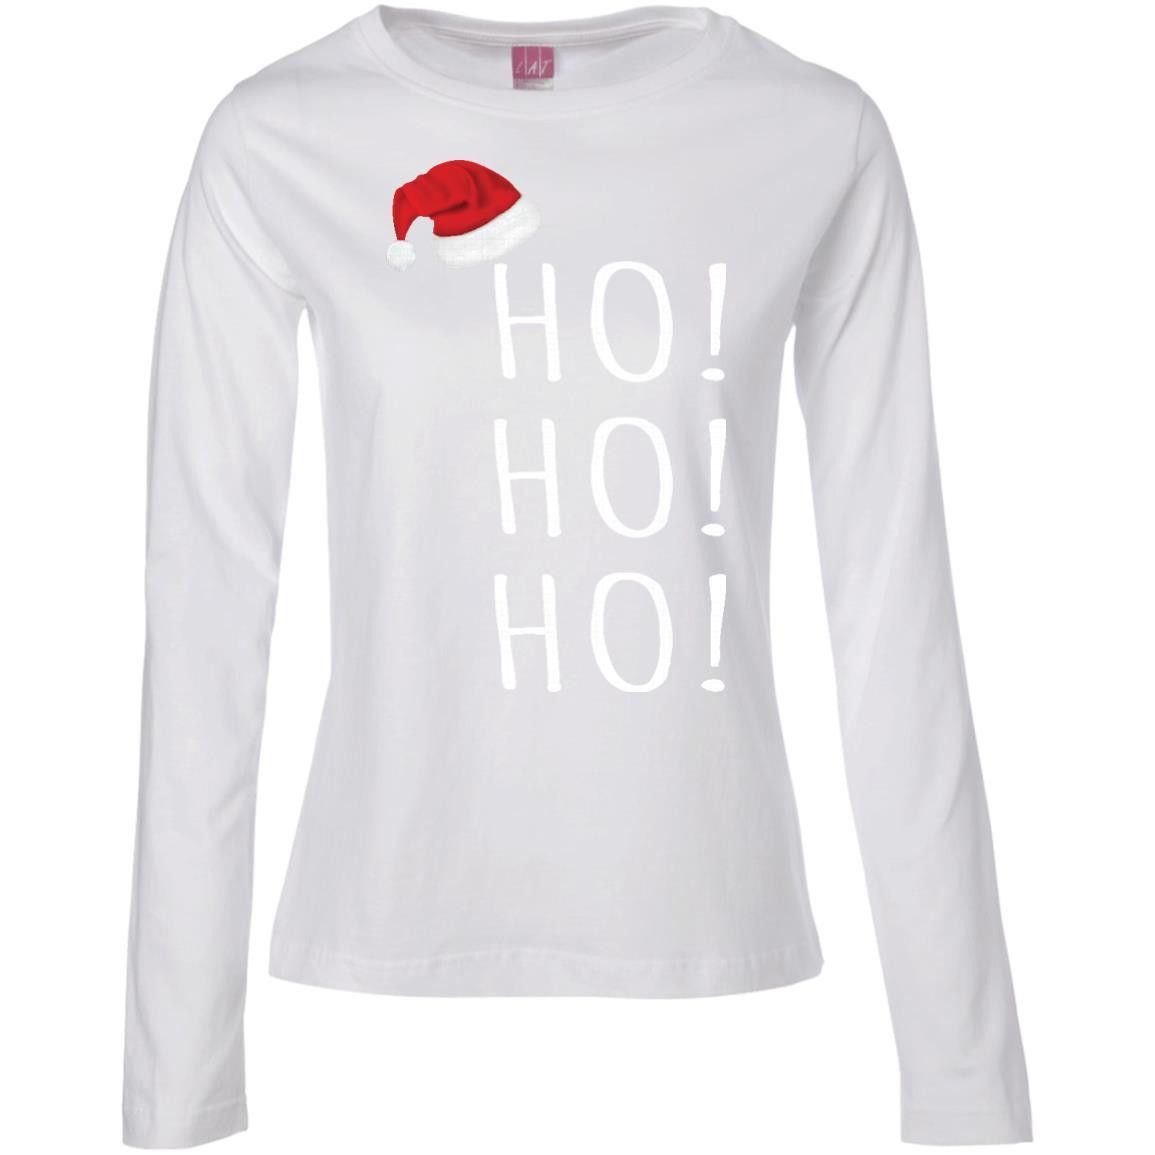 DroolingDog Pet Dog HOHOHO Christmas Holiday T-shirt -01 Ladies' Long Sleeve Cotton TShirt